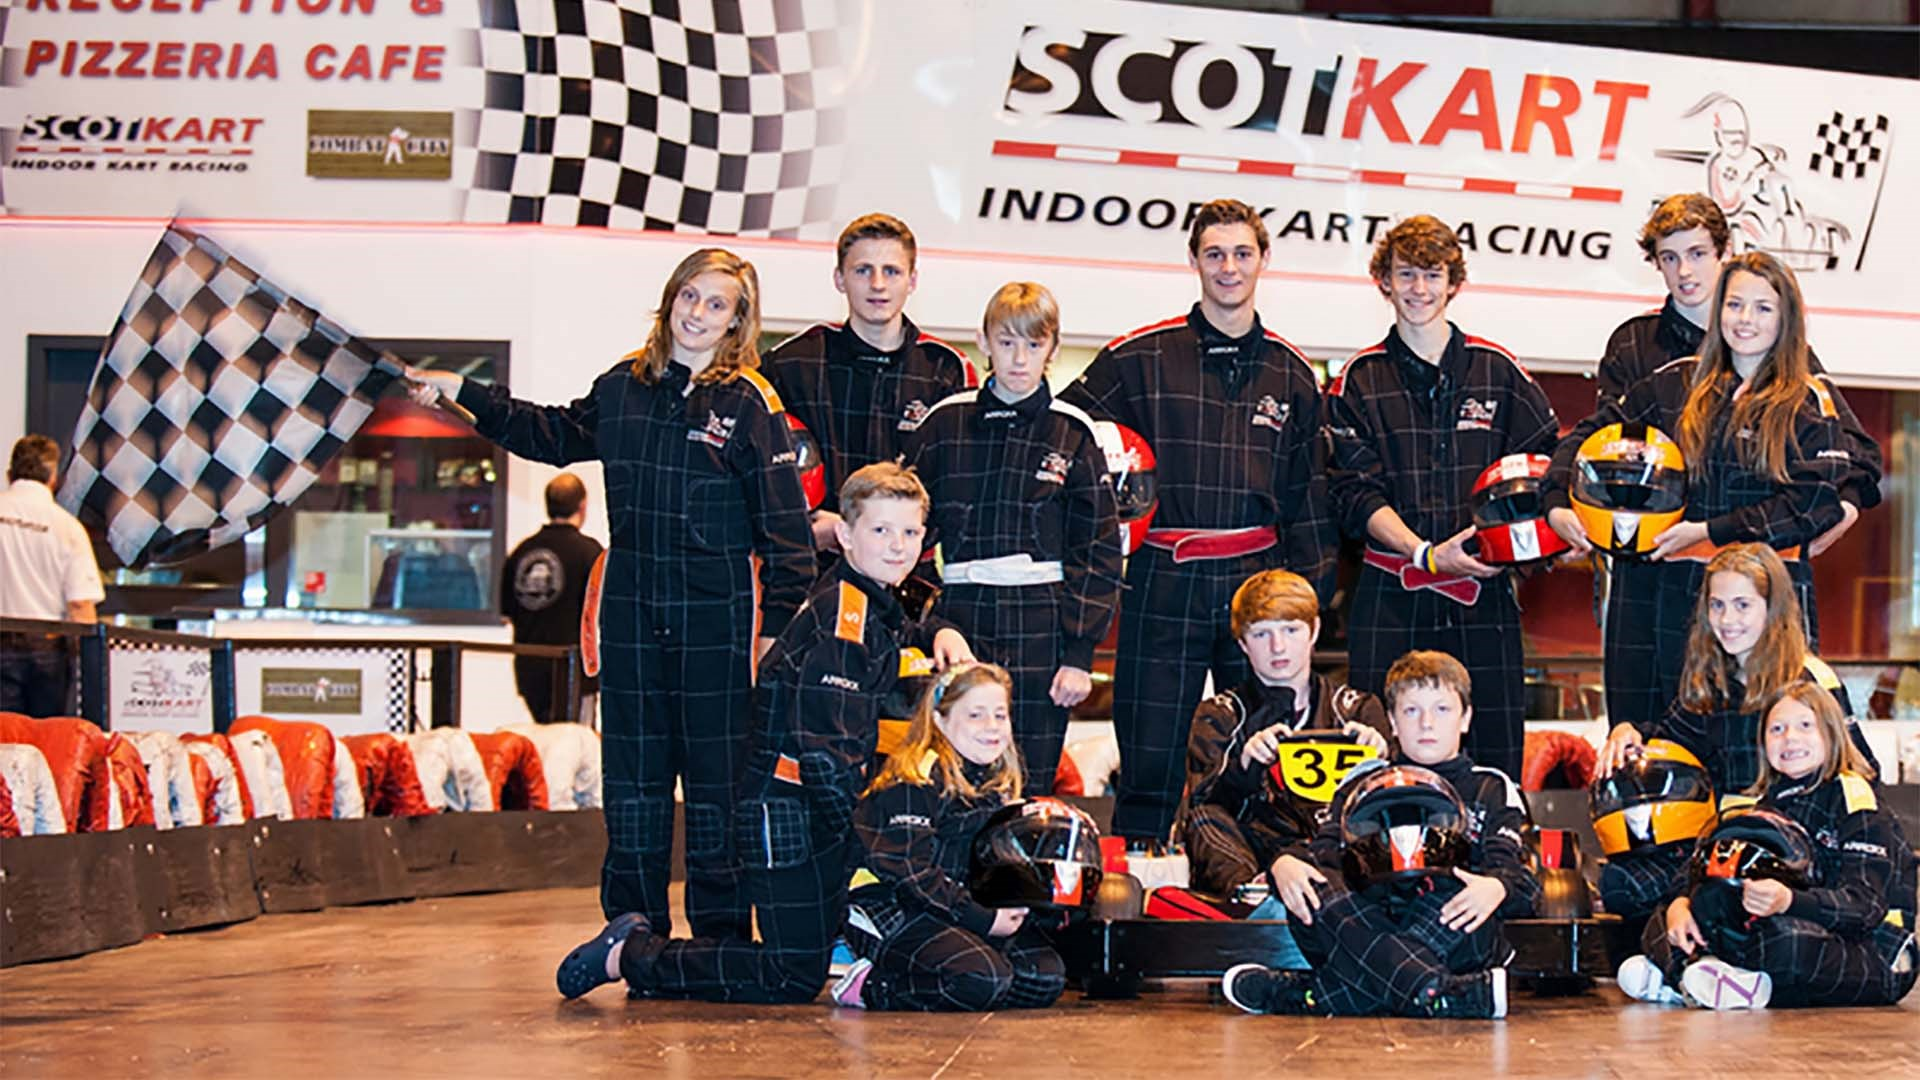 Scotkart Kids Kart Flag 1920x1080-min.jpg